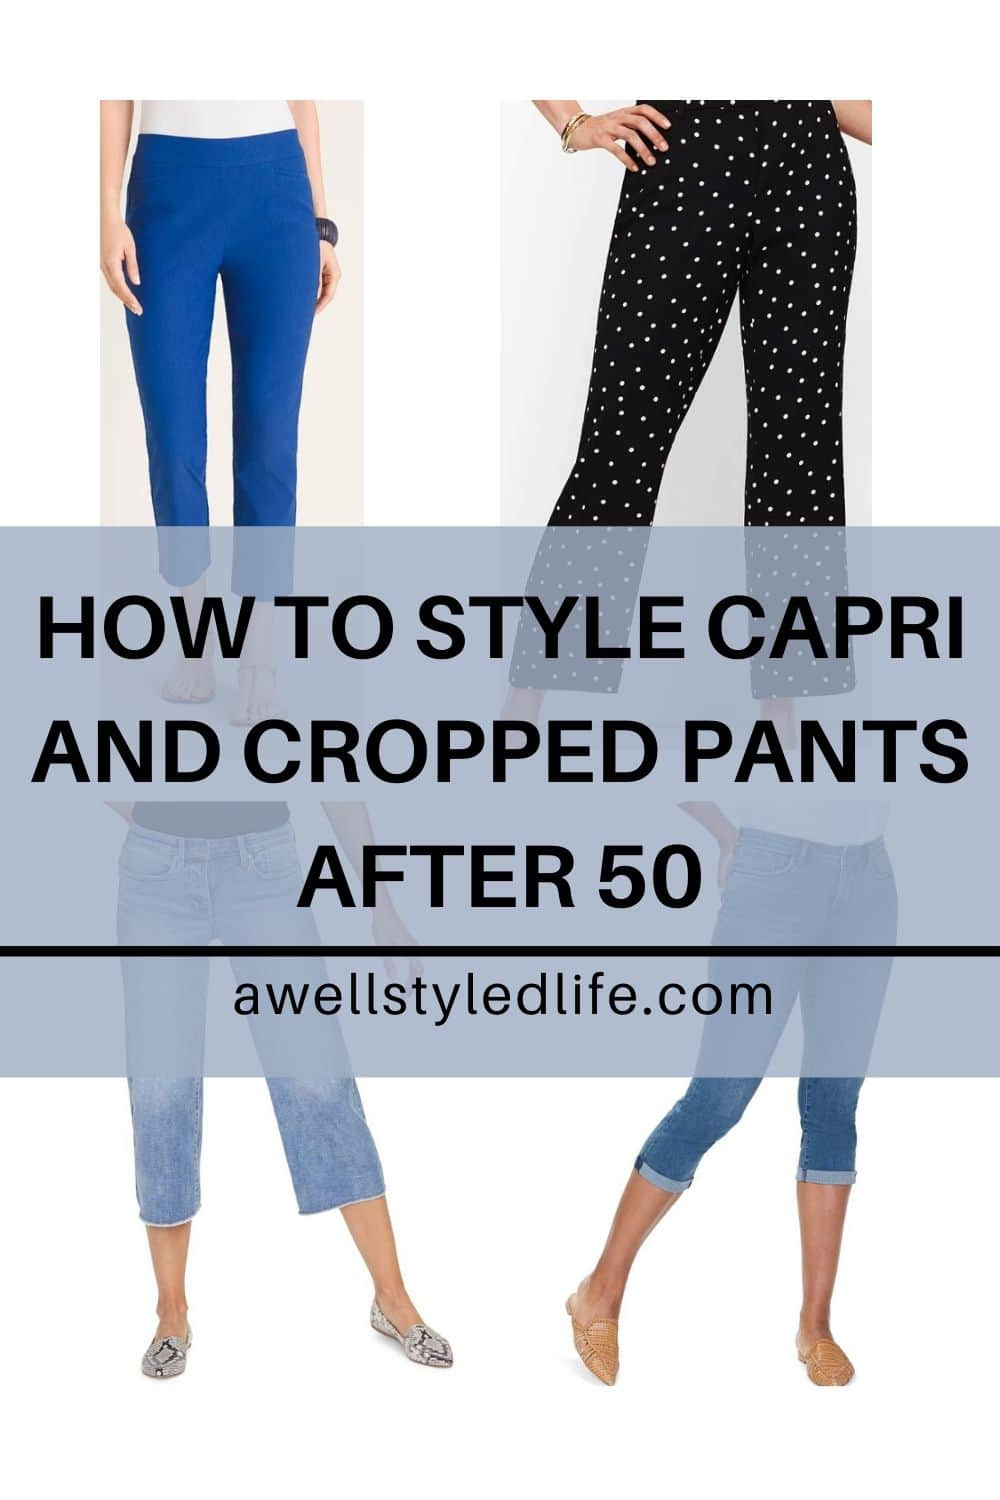 how to style capri and cropped pants